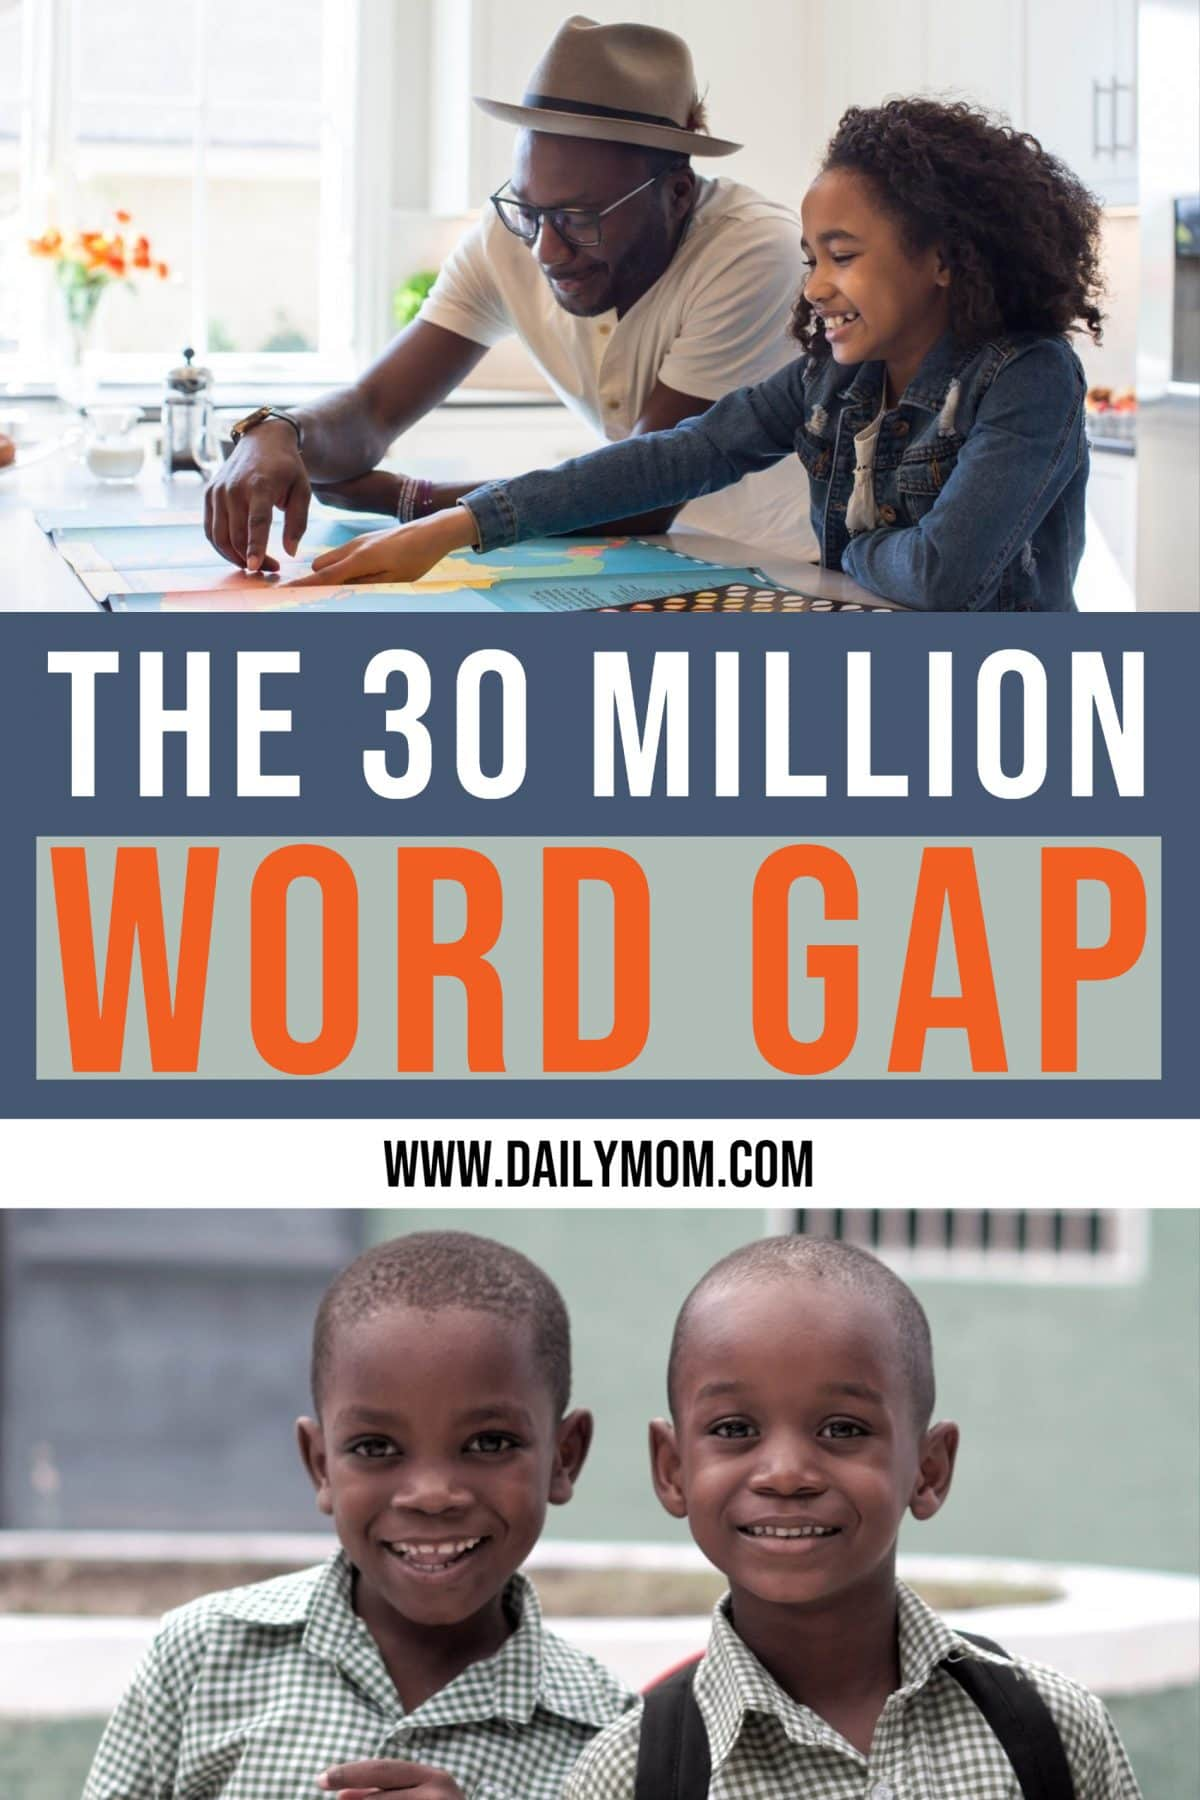 daily mom parent portal word gap